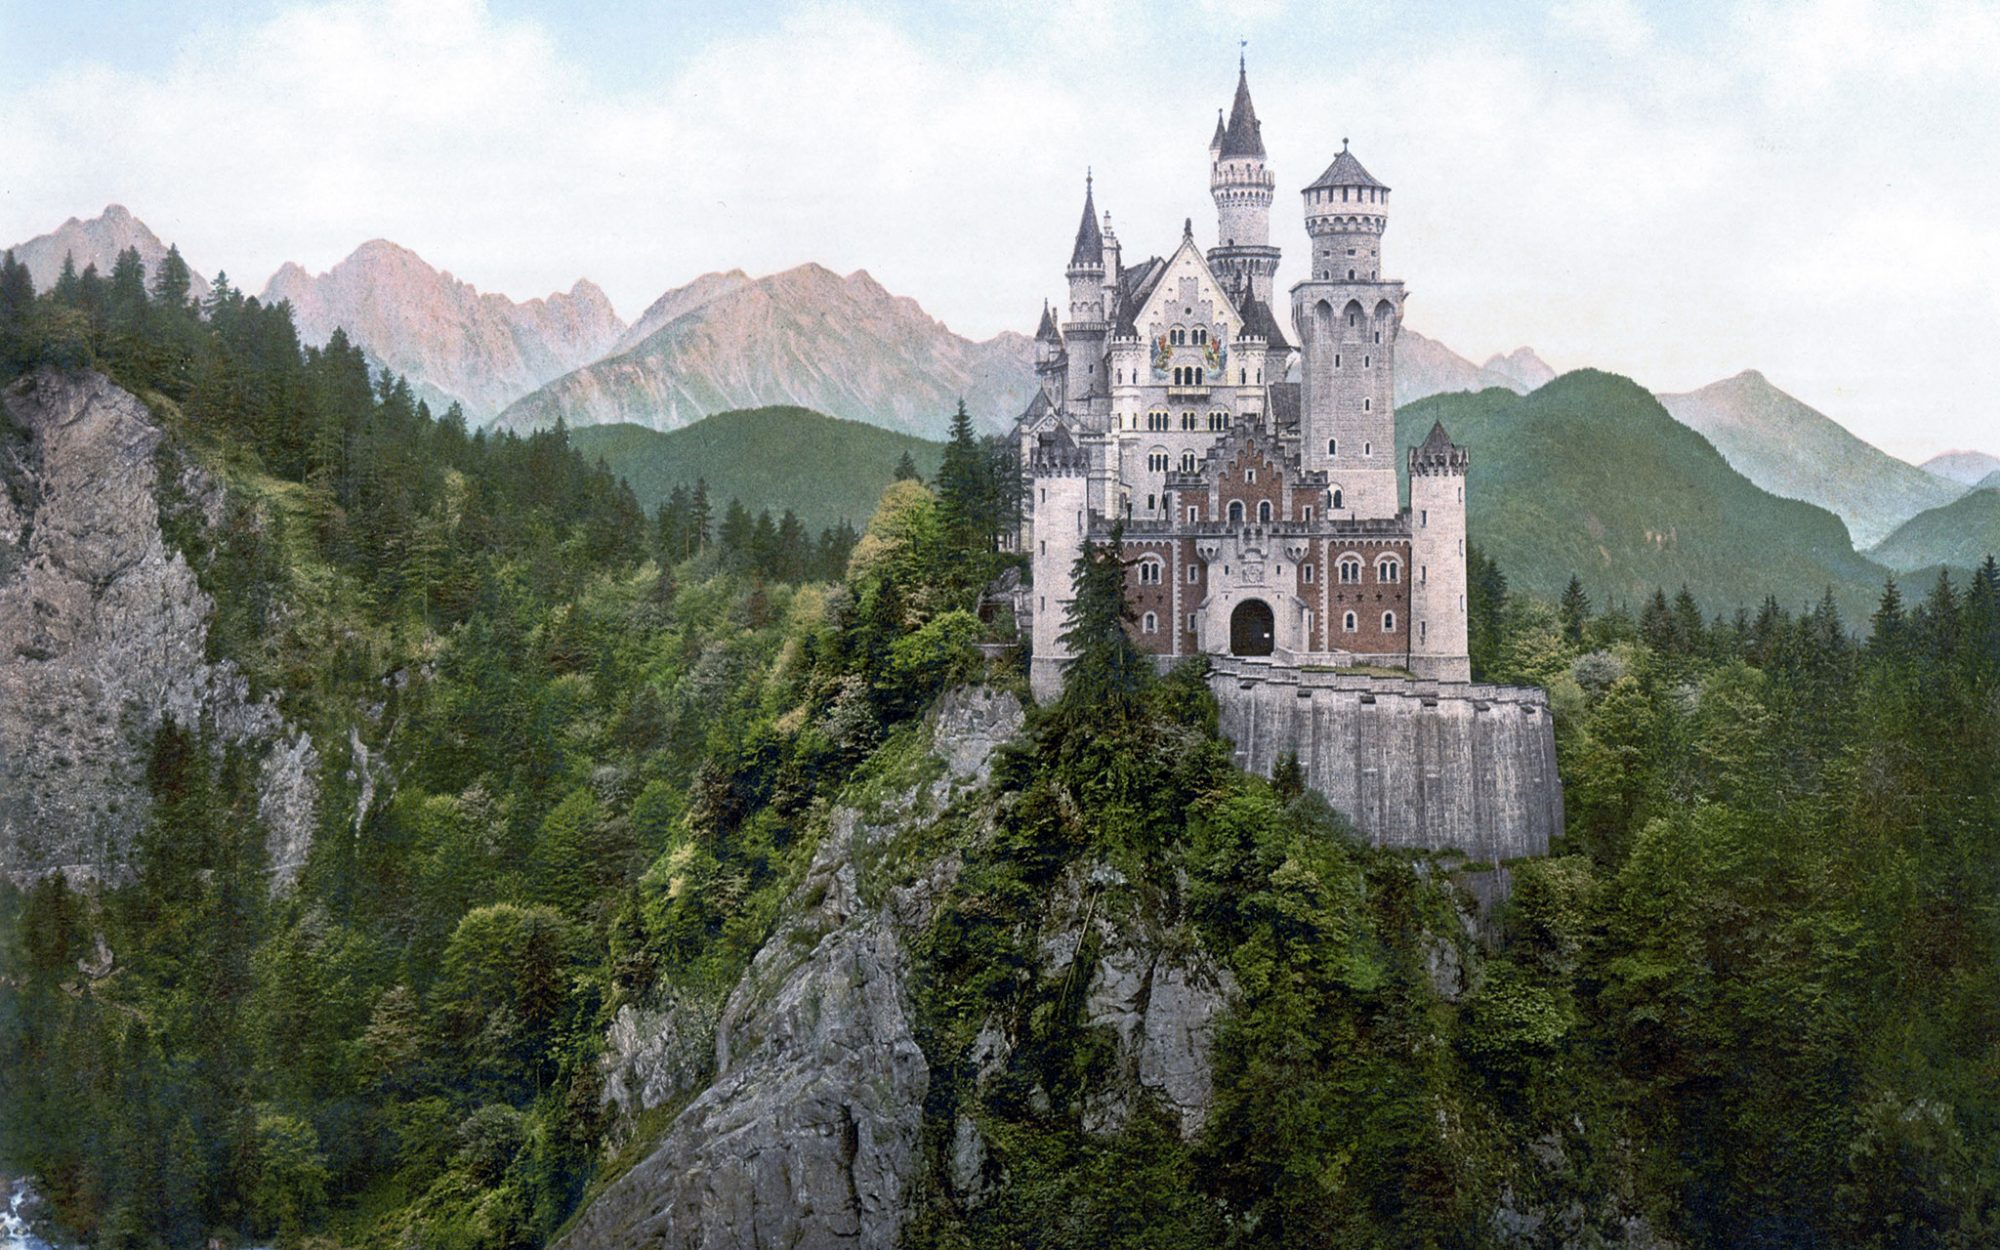 World's Most-Visited Castles: No. 13 Neuschwanstein Castle, Bavaria, Germany